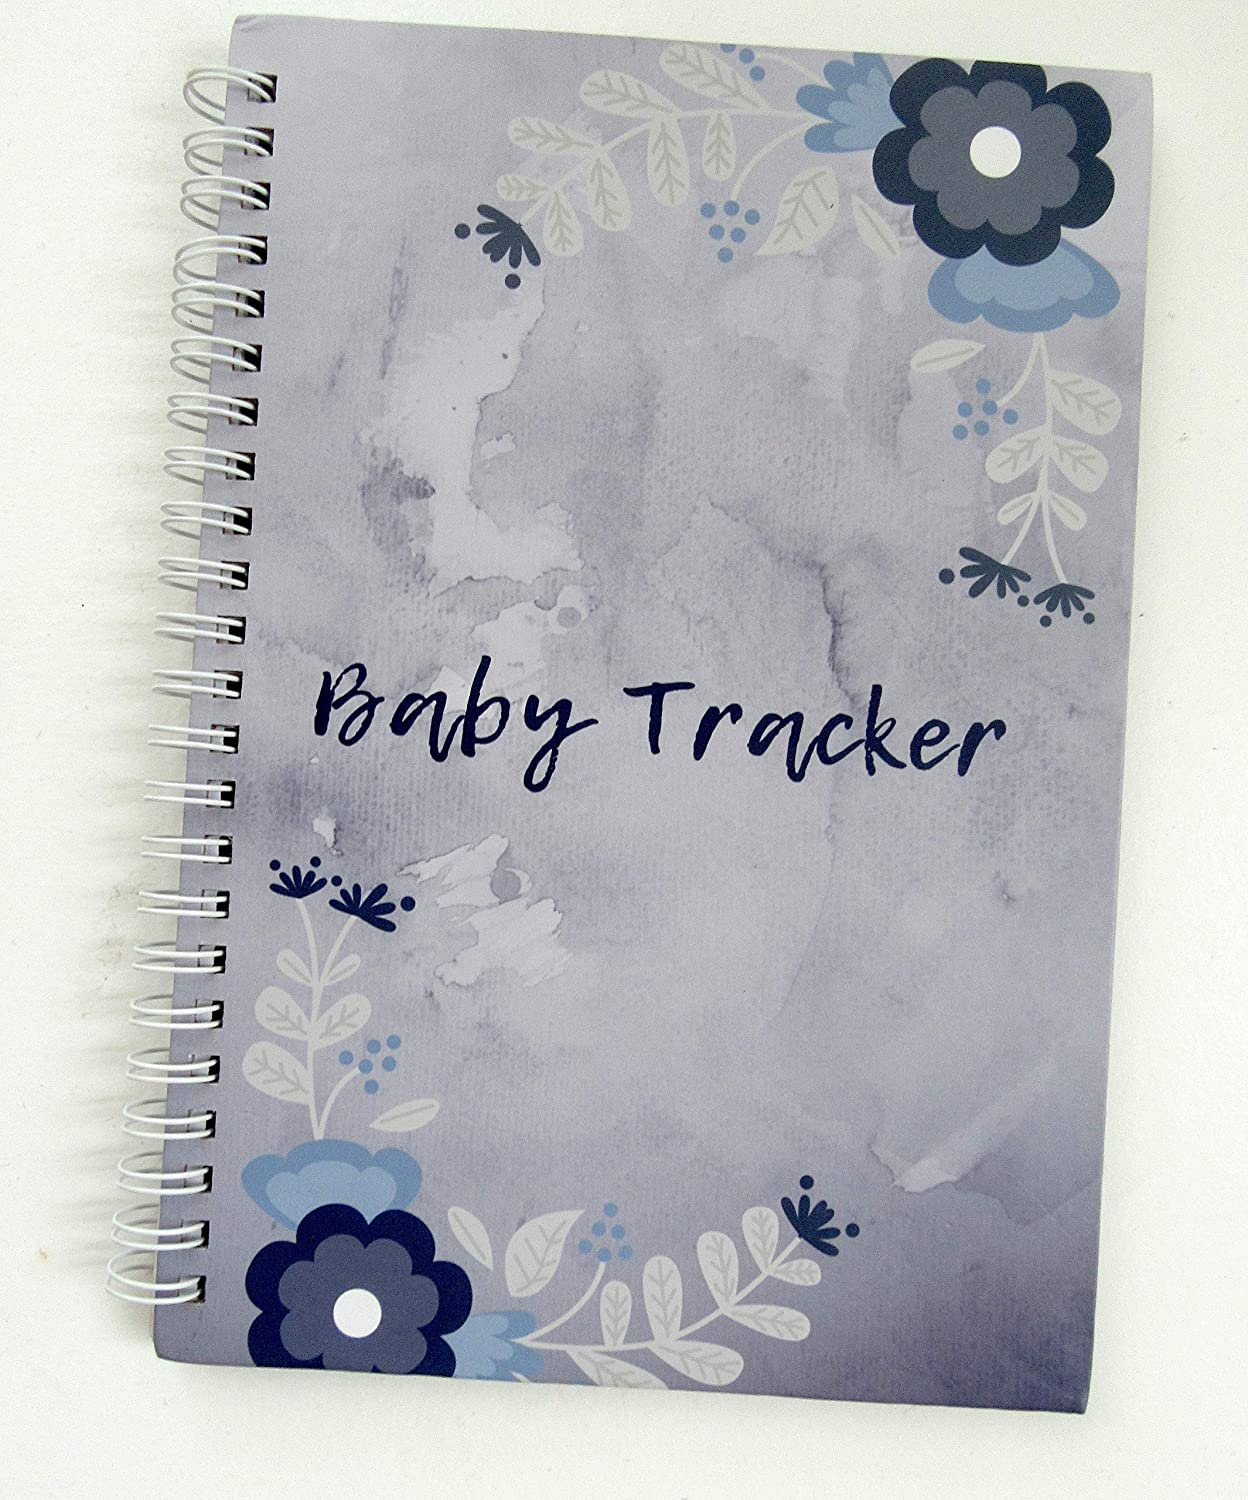 Baby Tracker Baby Daily Schedule Spiral Notebook for 62 Days (Day and Night) New Parents Gift, Baby Shower, Baby Registry, Baby Log Book, Baby Journal Bamboobee Baby Products